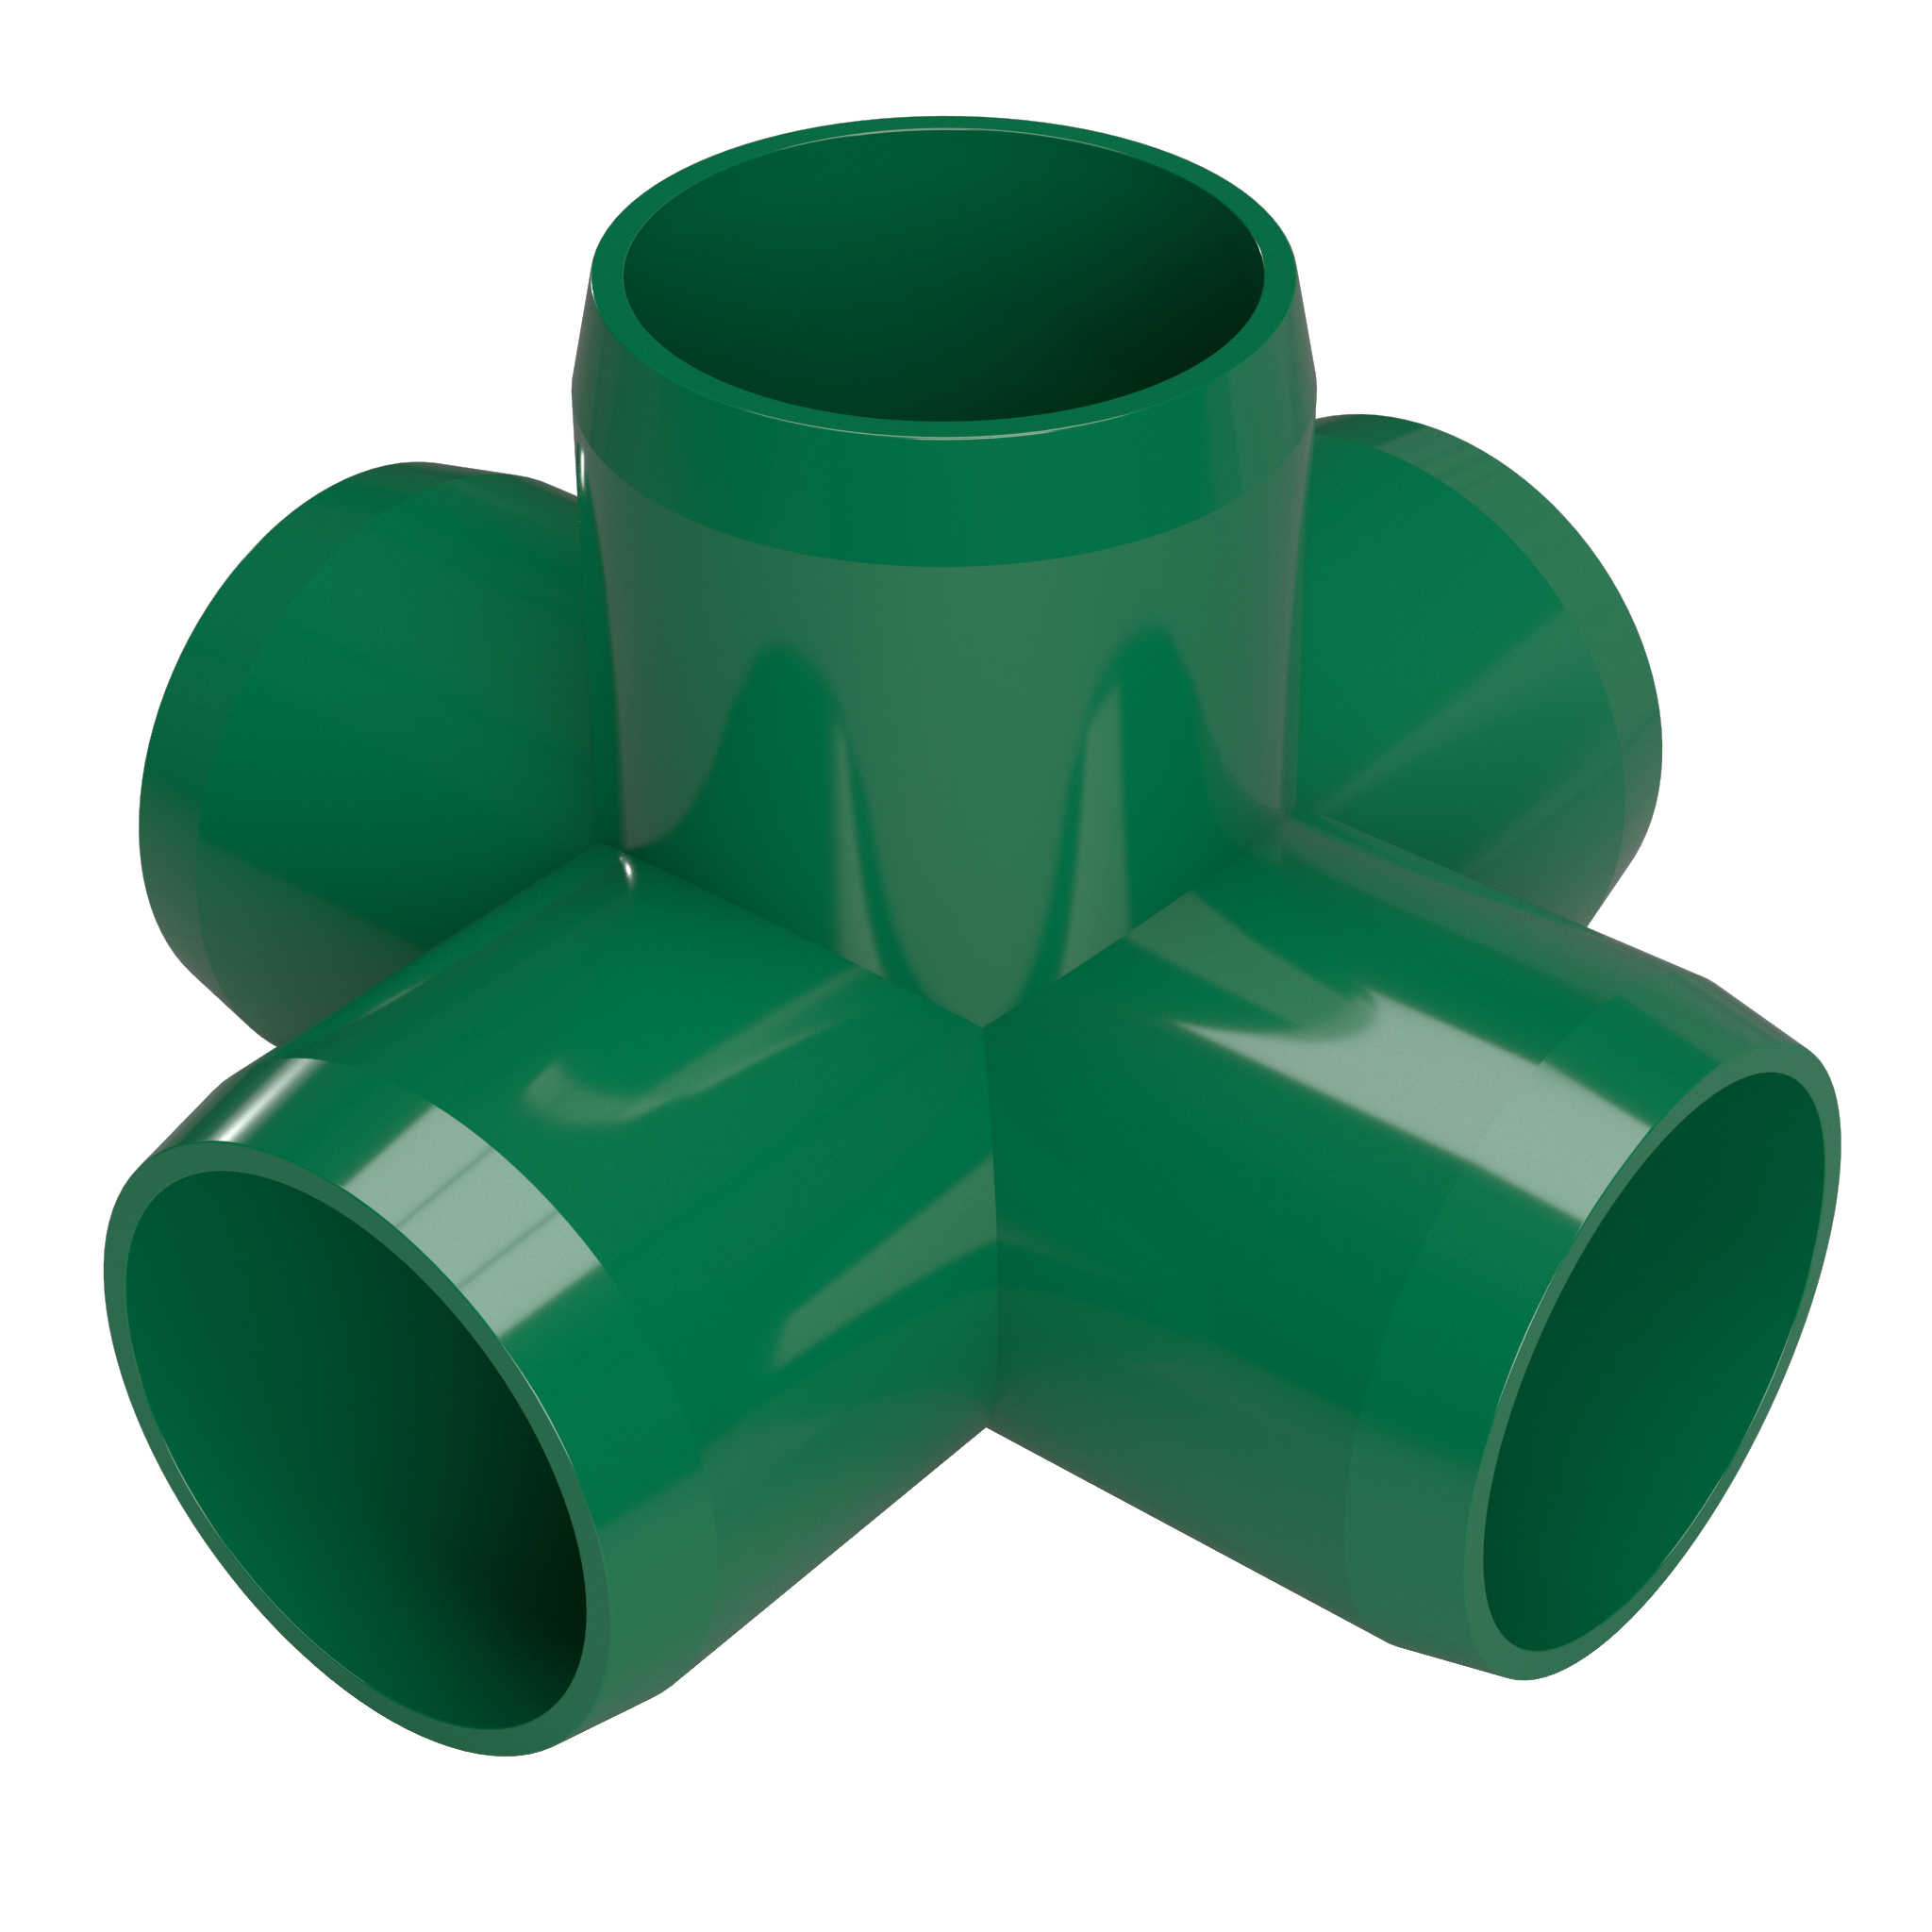 FORMUFIT F0015WC-GR-4 5-Way Cross PVC Fitting, Furniture Grade, 1 in. Size, Green, 4-Pack